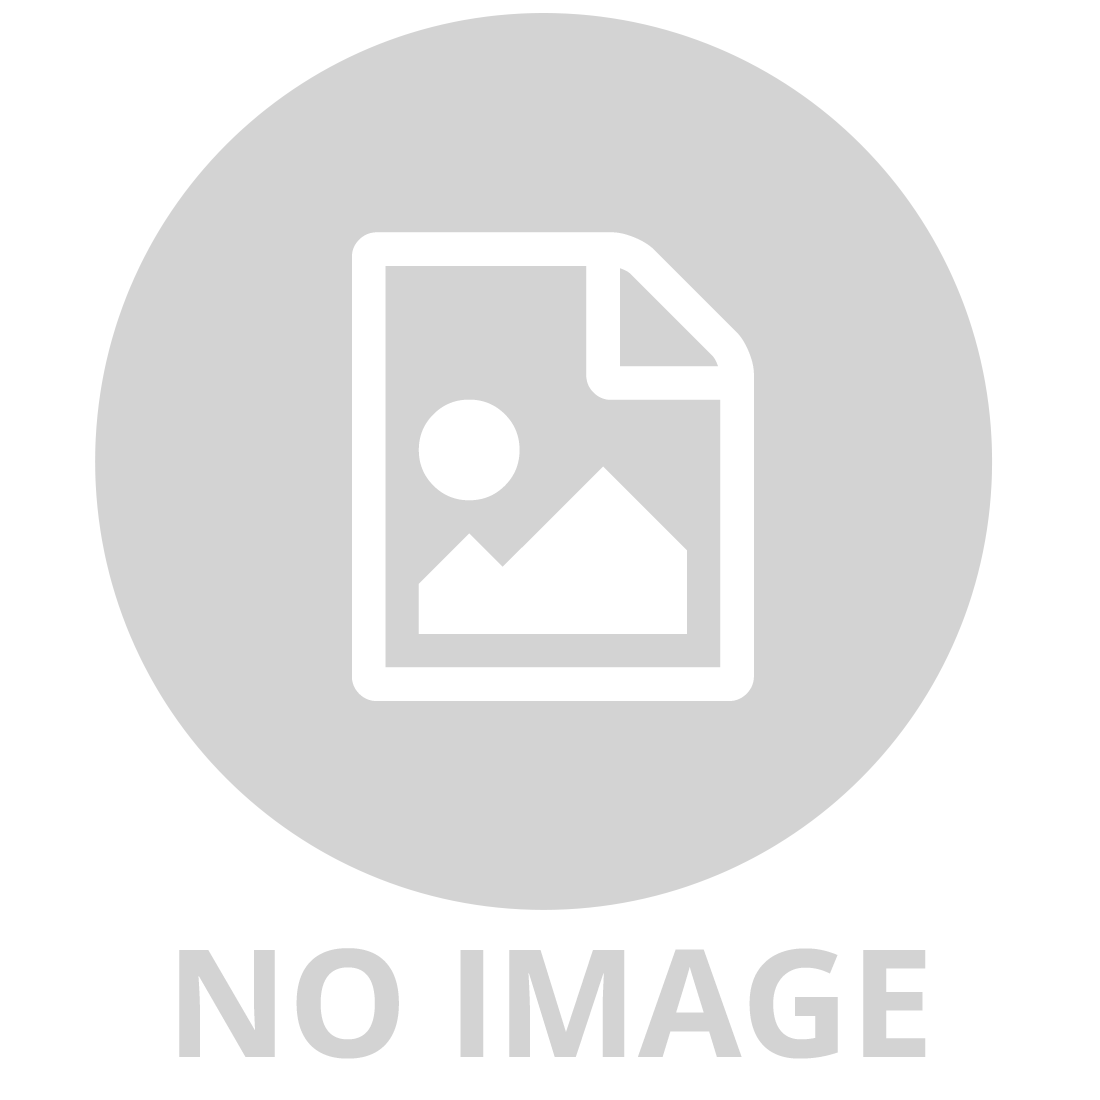 RUBIKS RACE THE ULTIMATE FACE TO FACE GAME